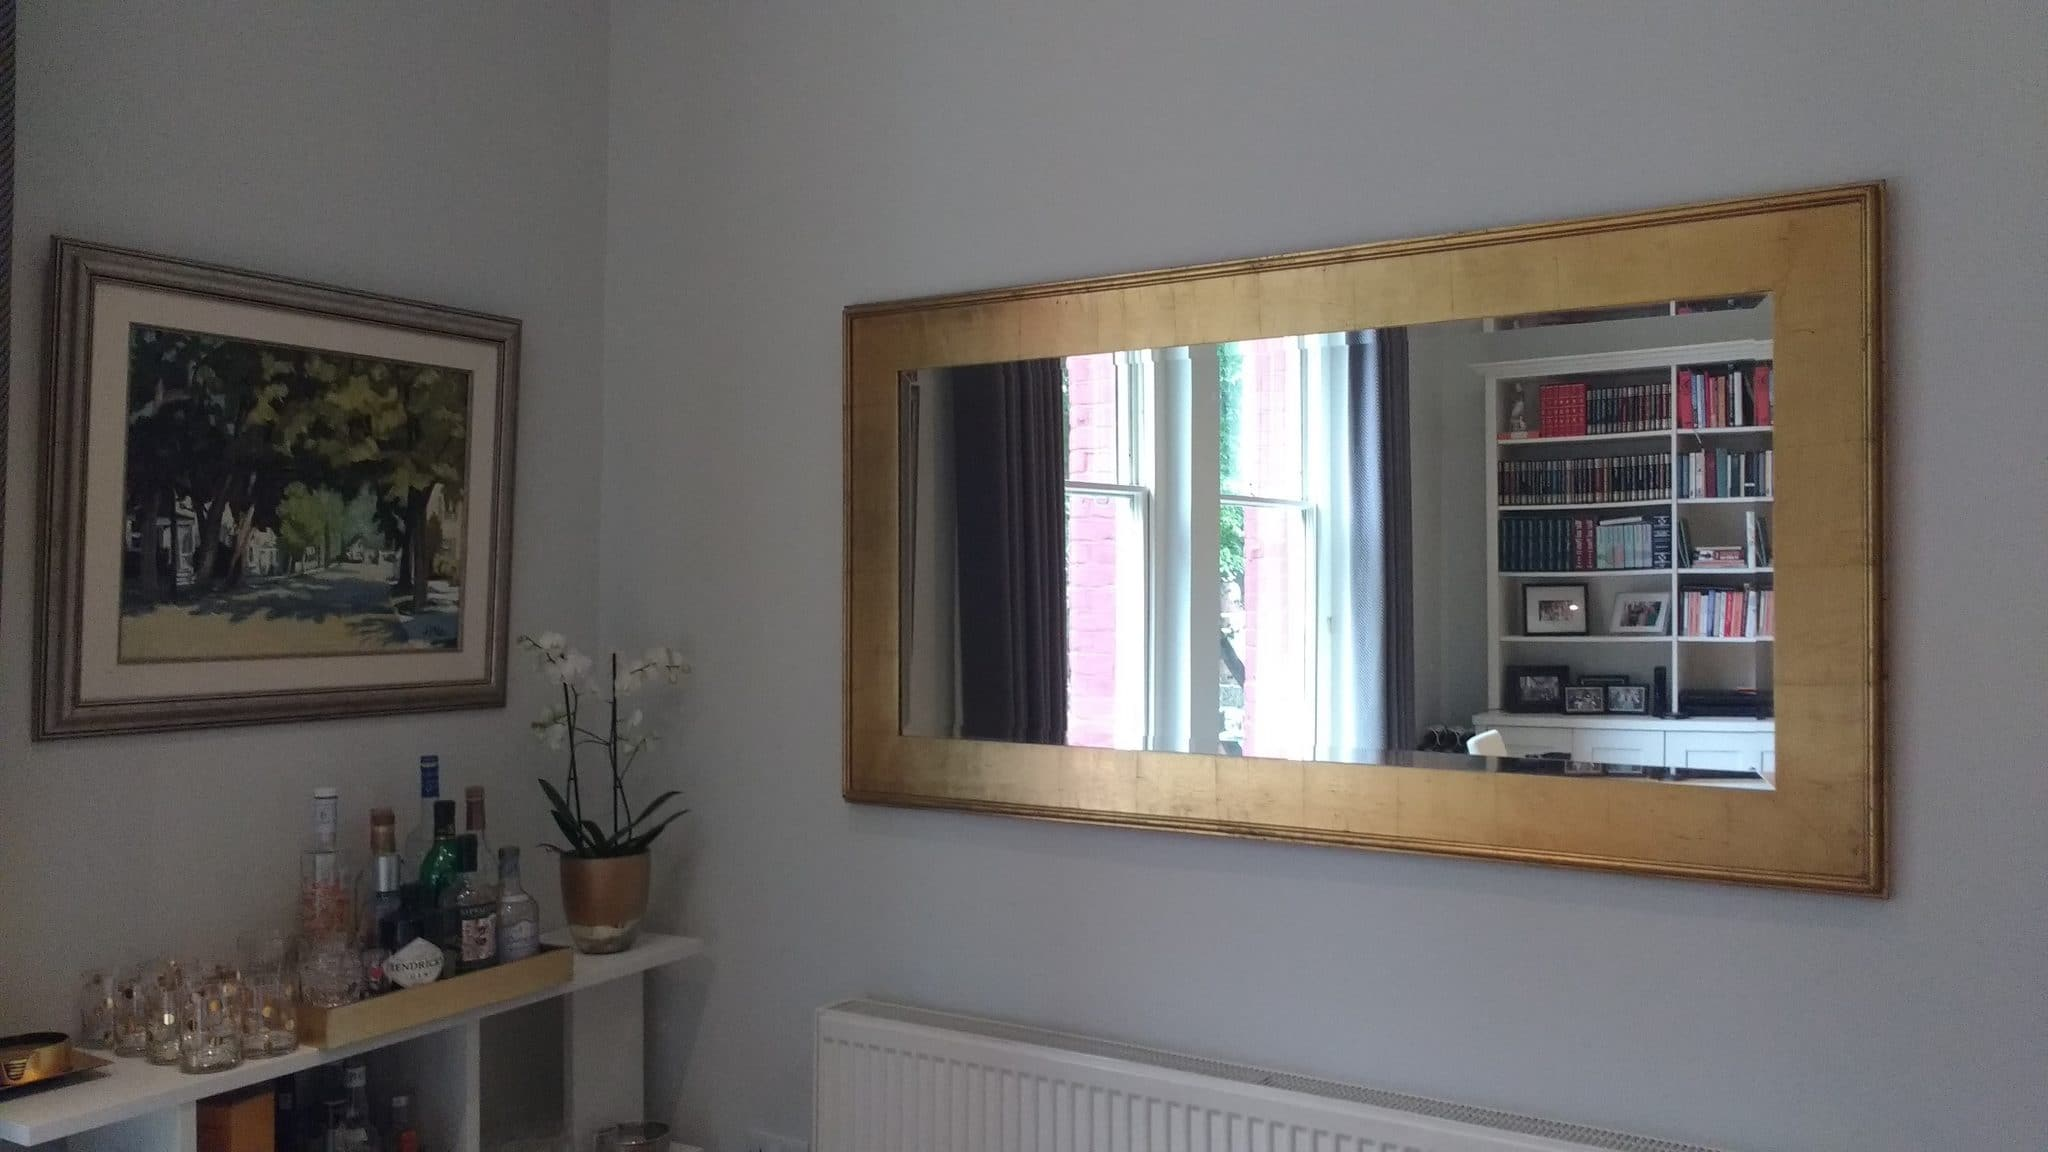 A gold framed rectangular mirror installed in a home in Marleybone/